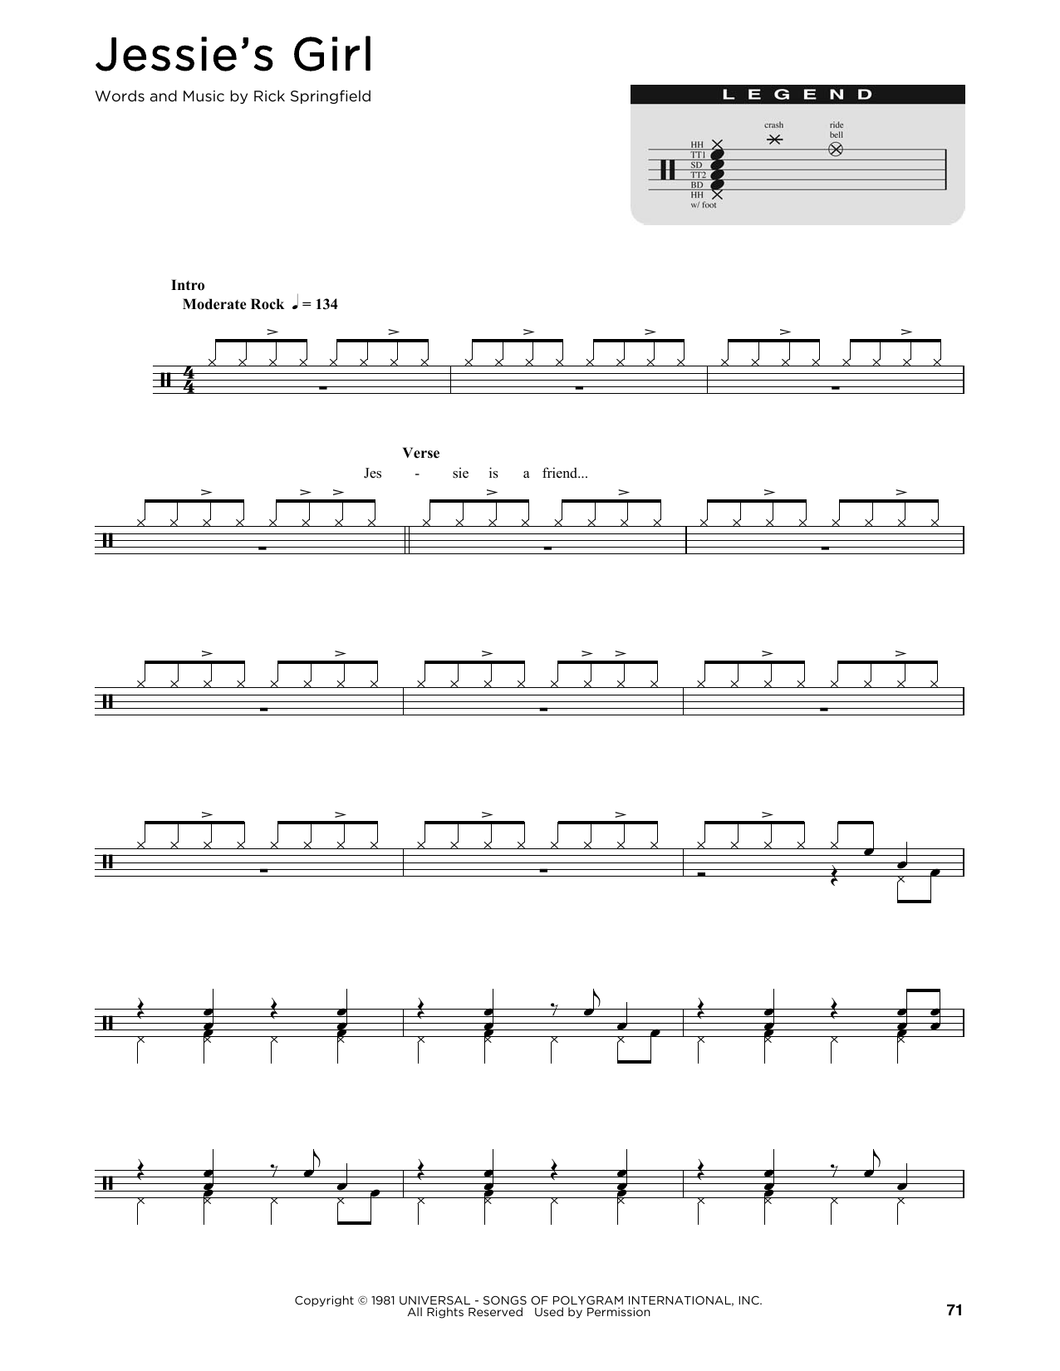 Jessie's Girl - Rick Springfield - Full Drum Transcription / Drum Sheet Music - SheetMusicDirect D